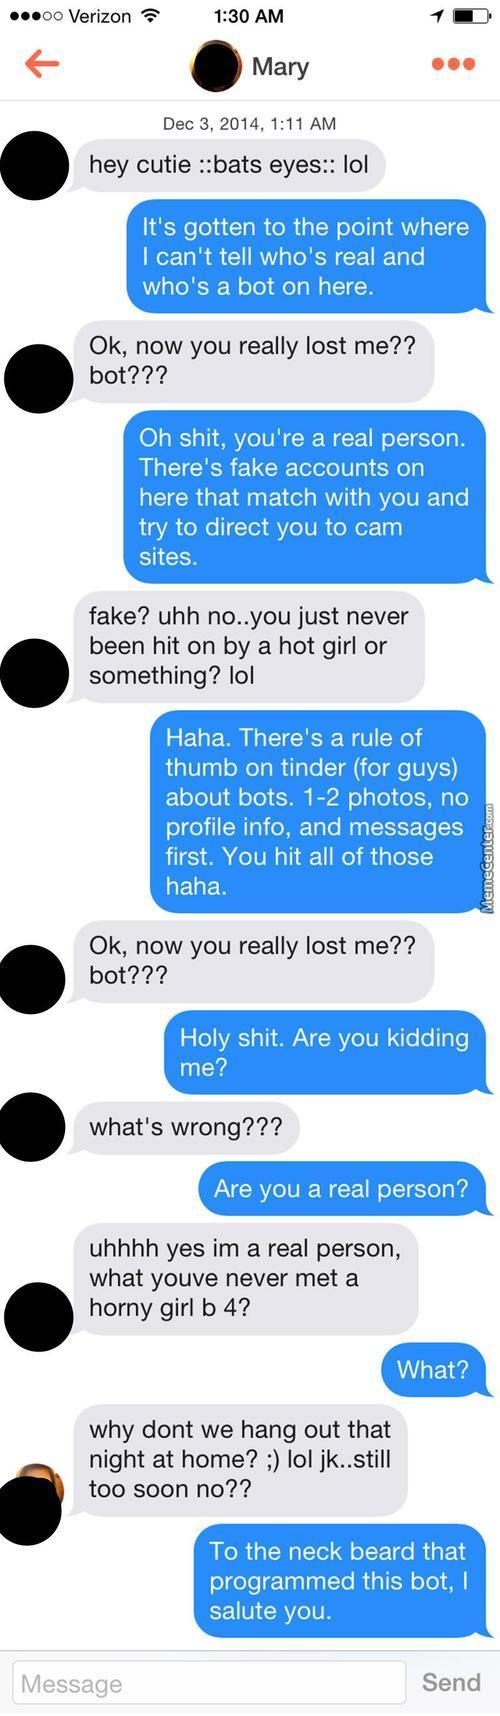 If I Got A Dollar For Every Time I Got Matched With A Bot I Would Be A Very Rich Man.